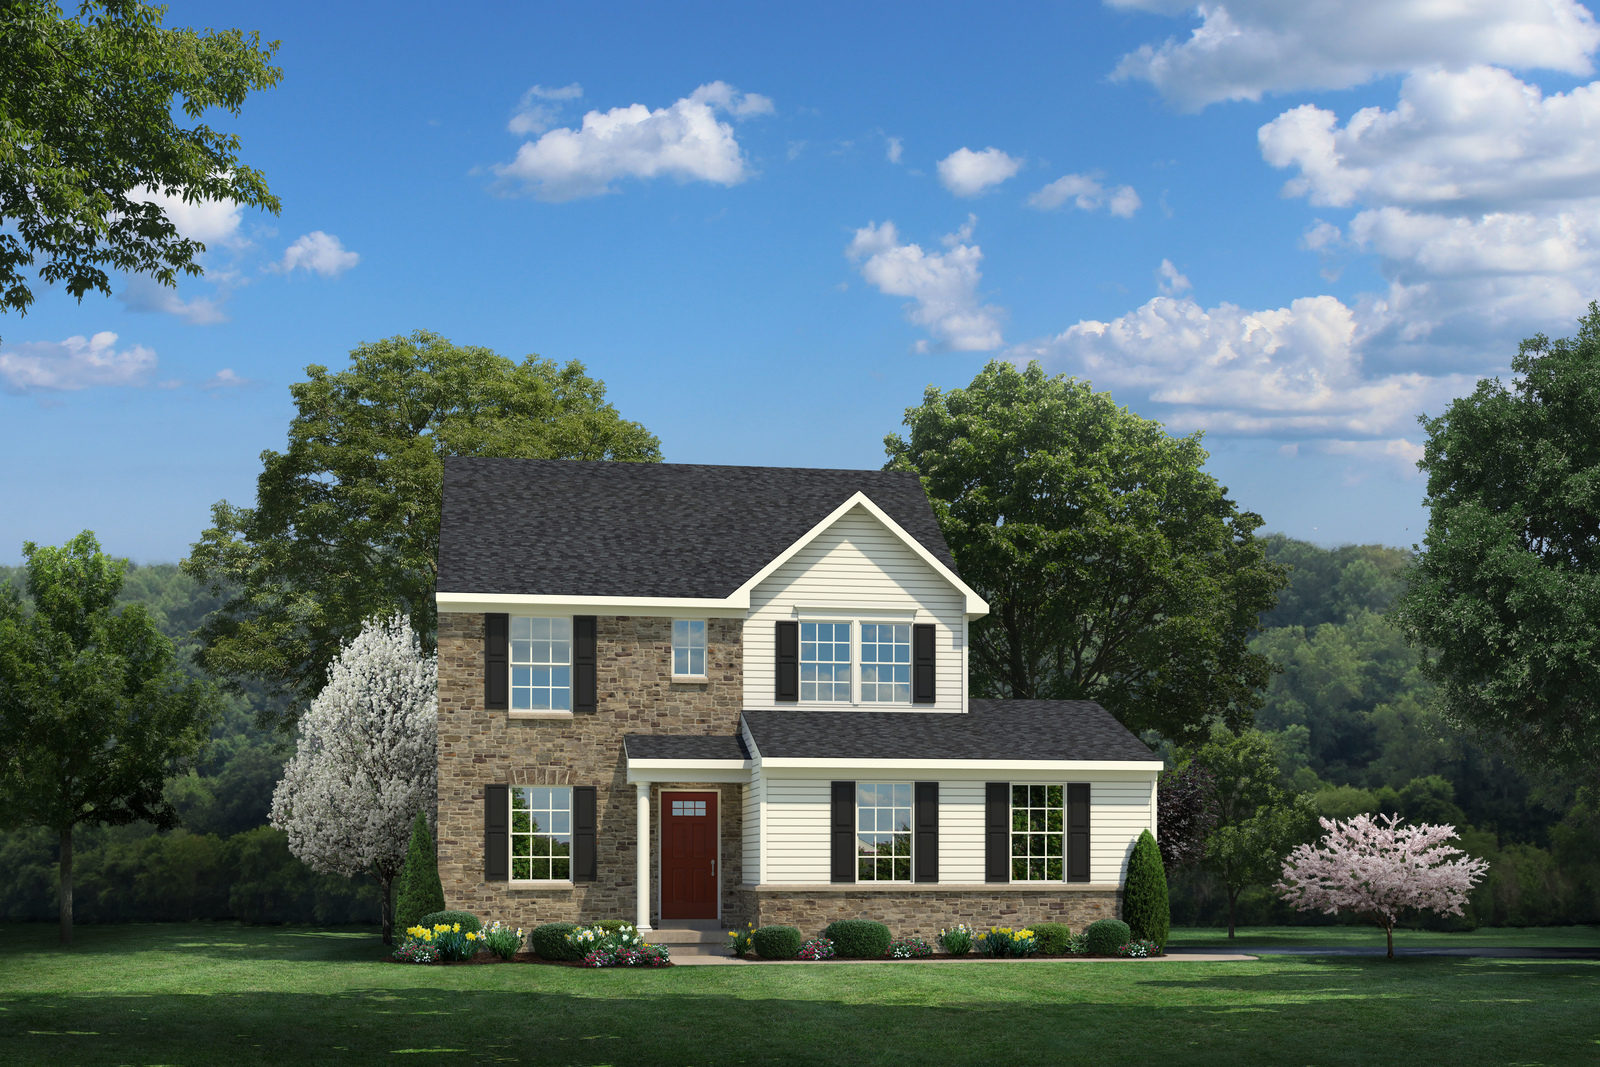 New Construction Single Family Homes For Sale Ravenna: New Construction Single-Family Homes For Sale -Sorrento